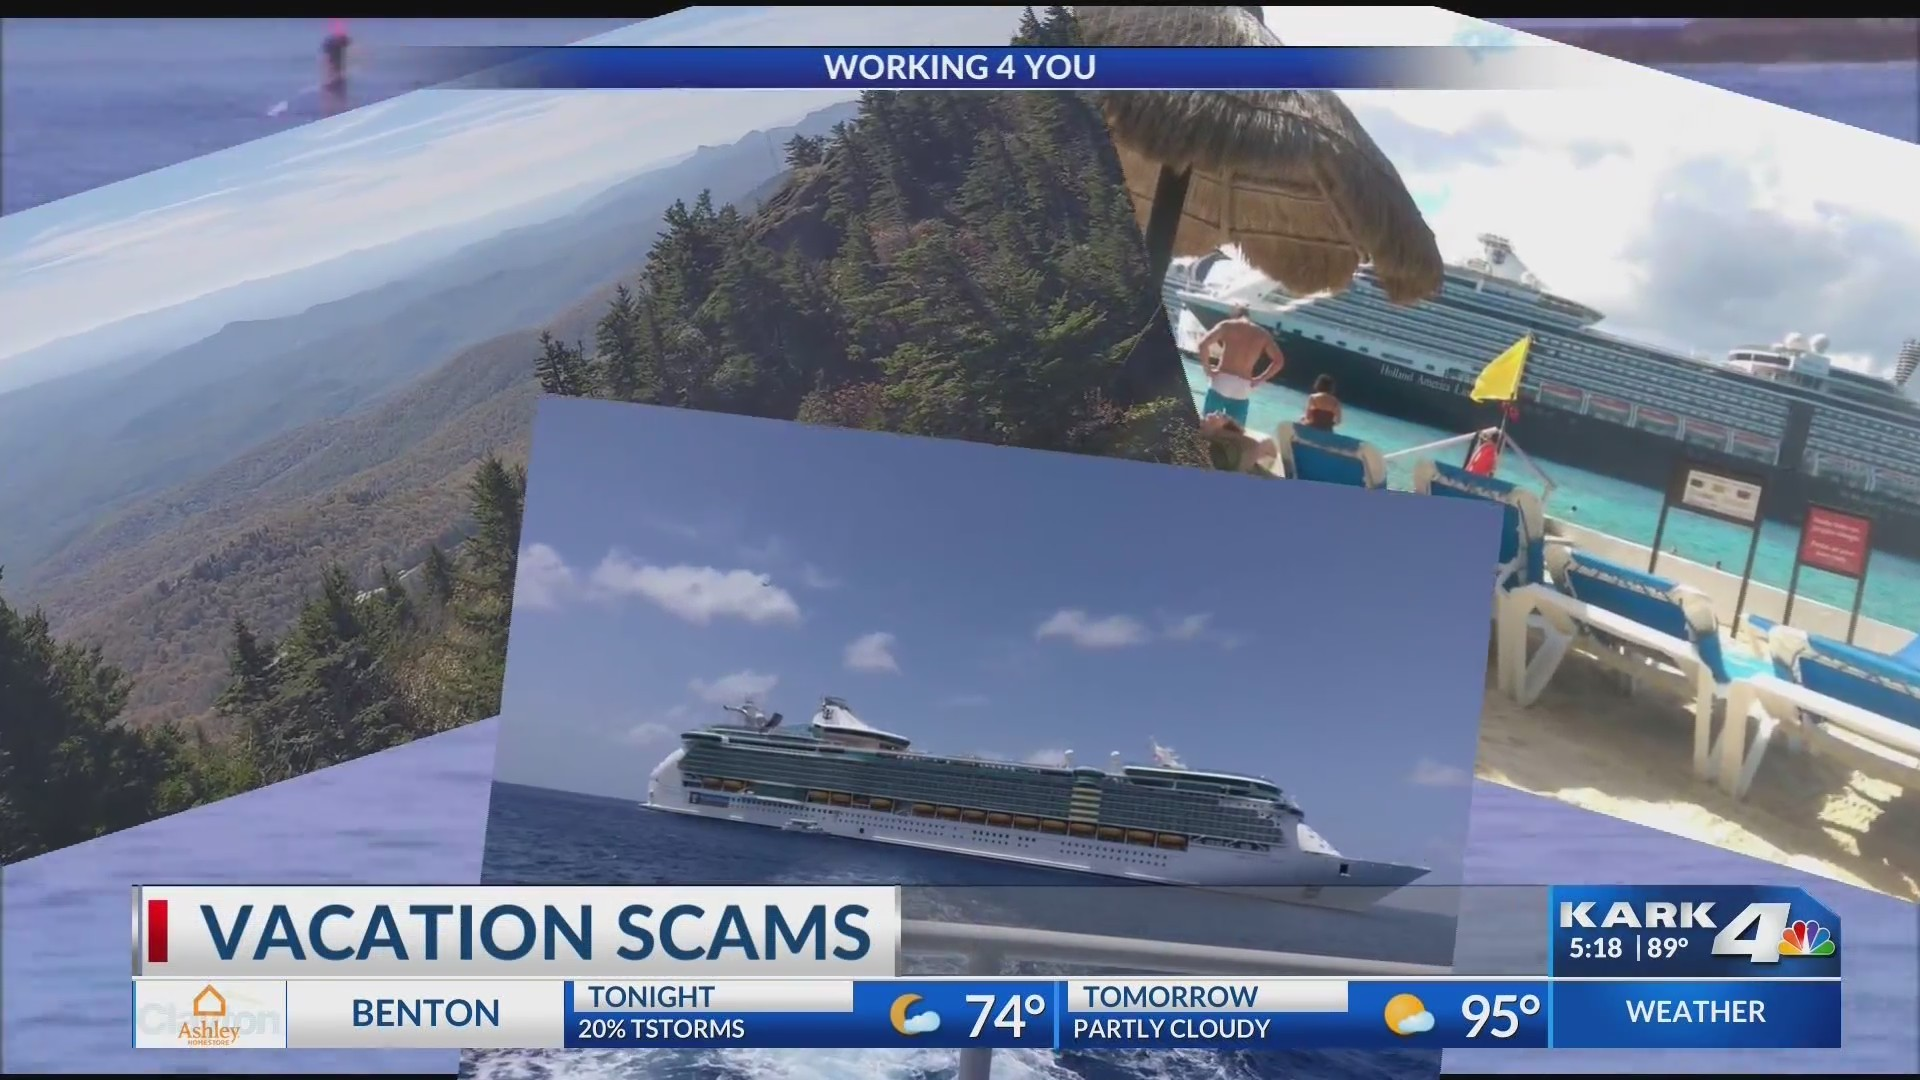 BBB_warns_of_vacationing_scams_0_20190620222906-118809306